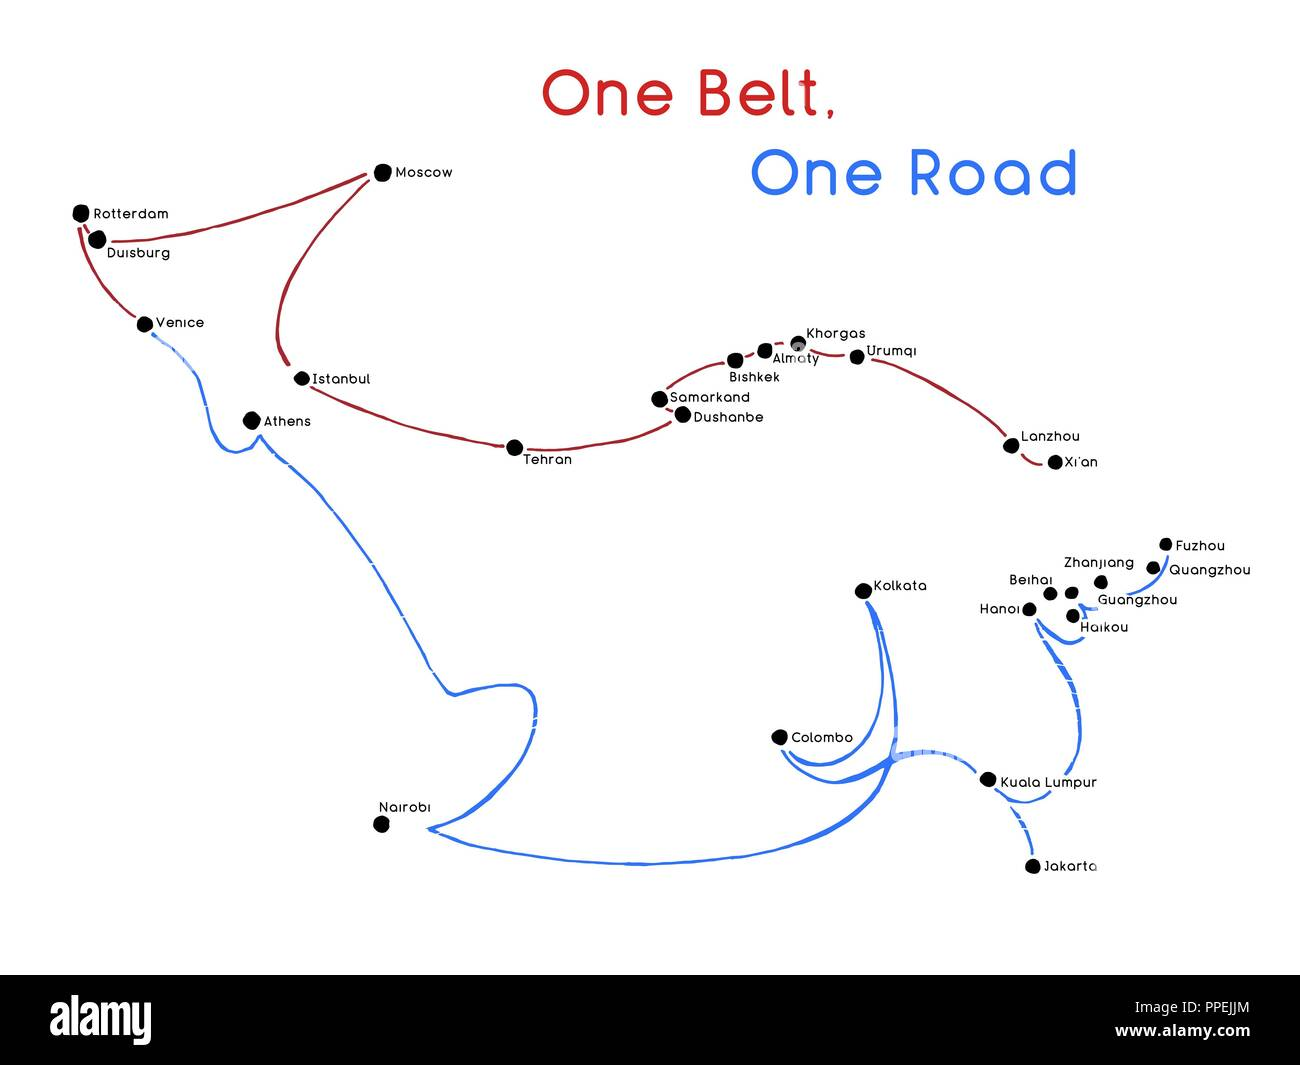 One Belt One Road new Silk Road concept. 21st-century connectivity and cooperation between Eurasian countries. Vector illustration. - Stock Image